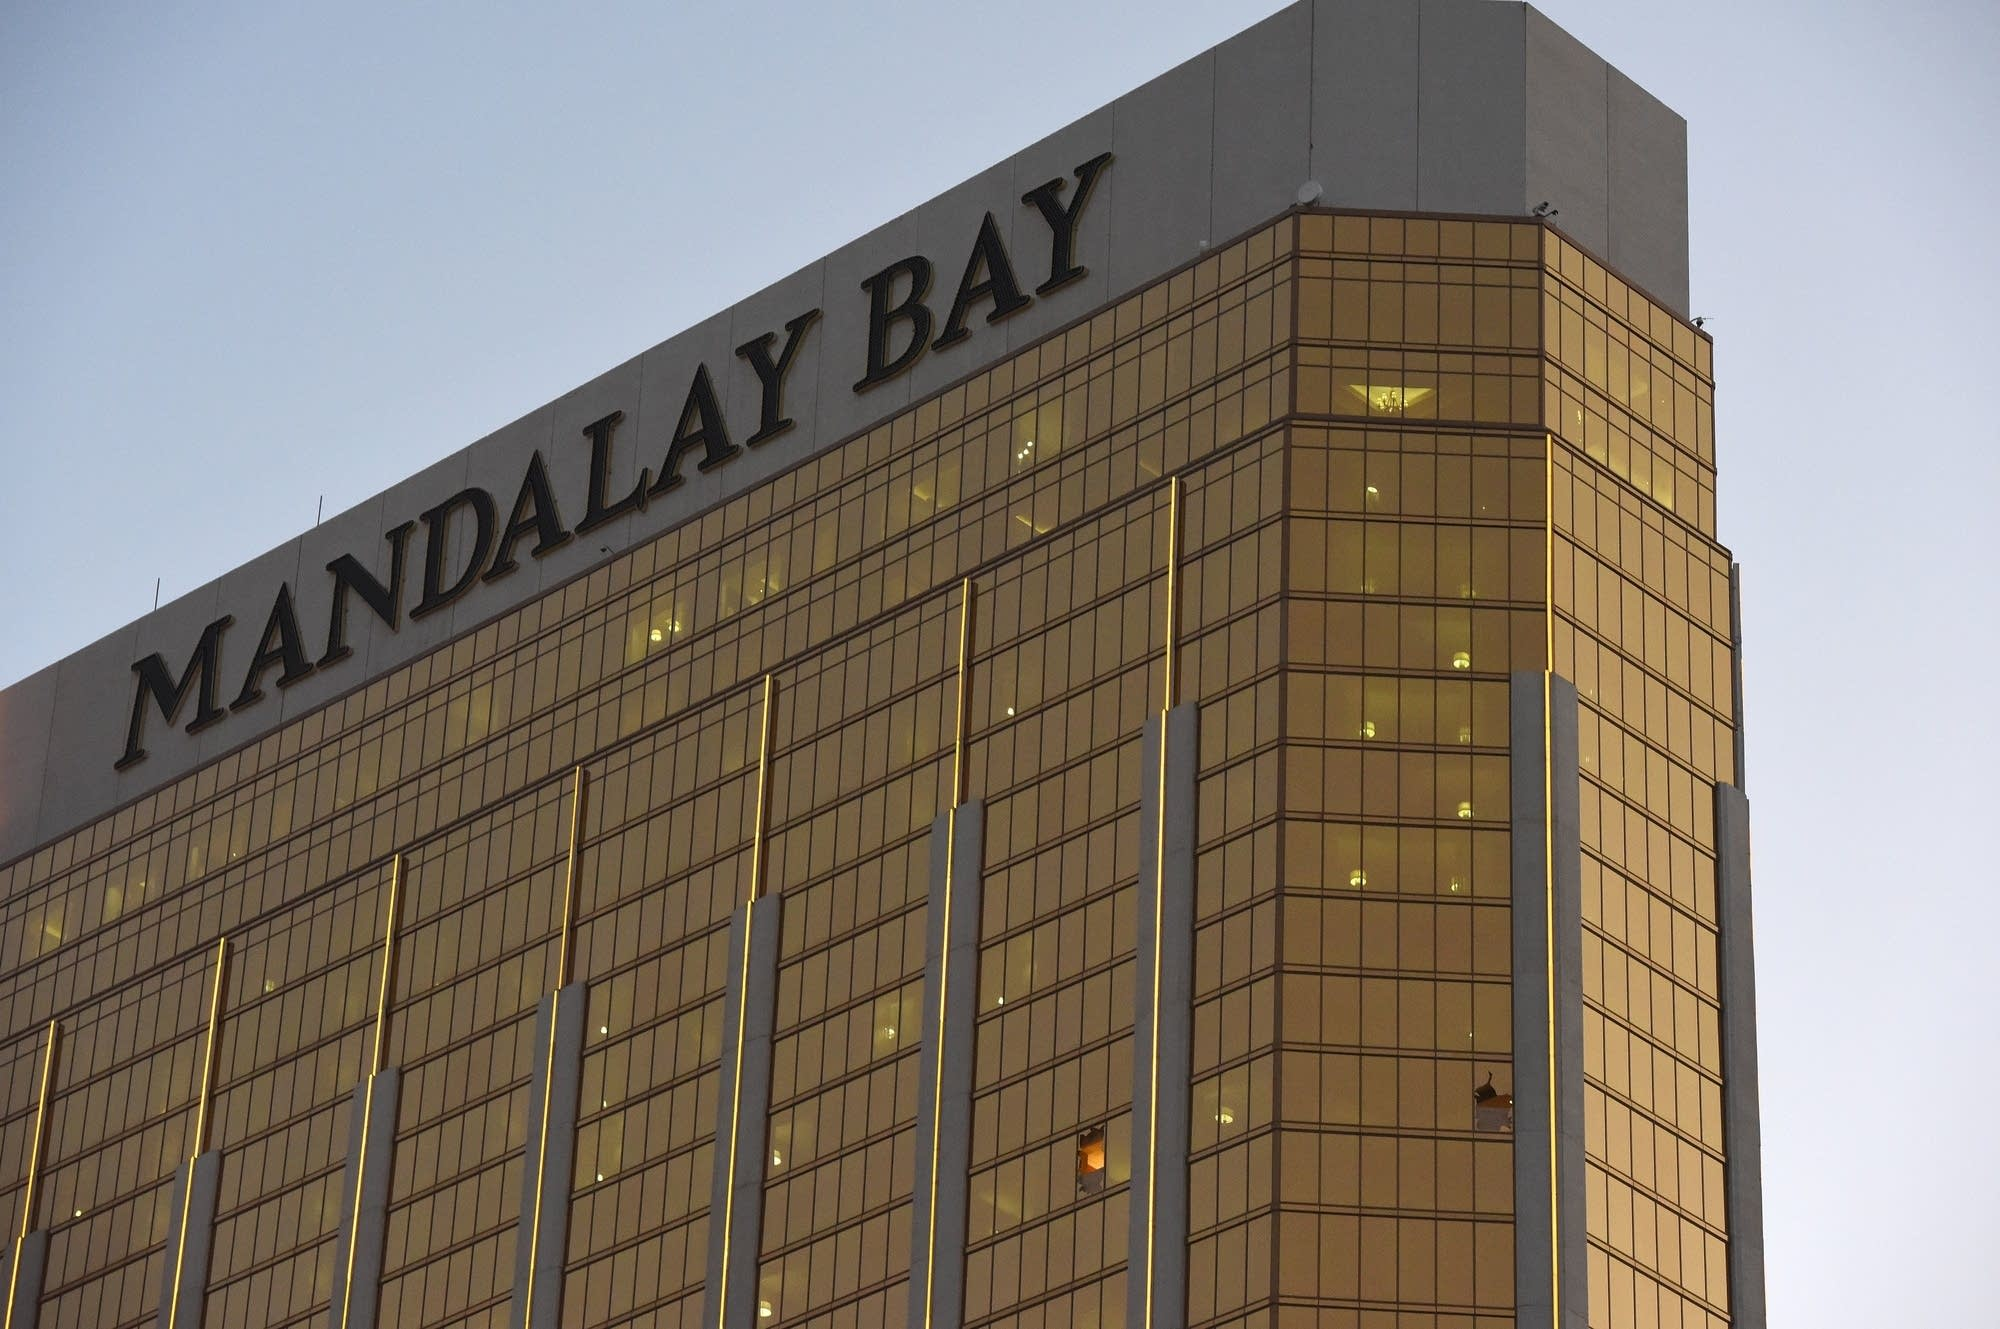 Broken windows at the Mandalay Bay Hotel and Casino.